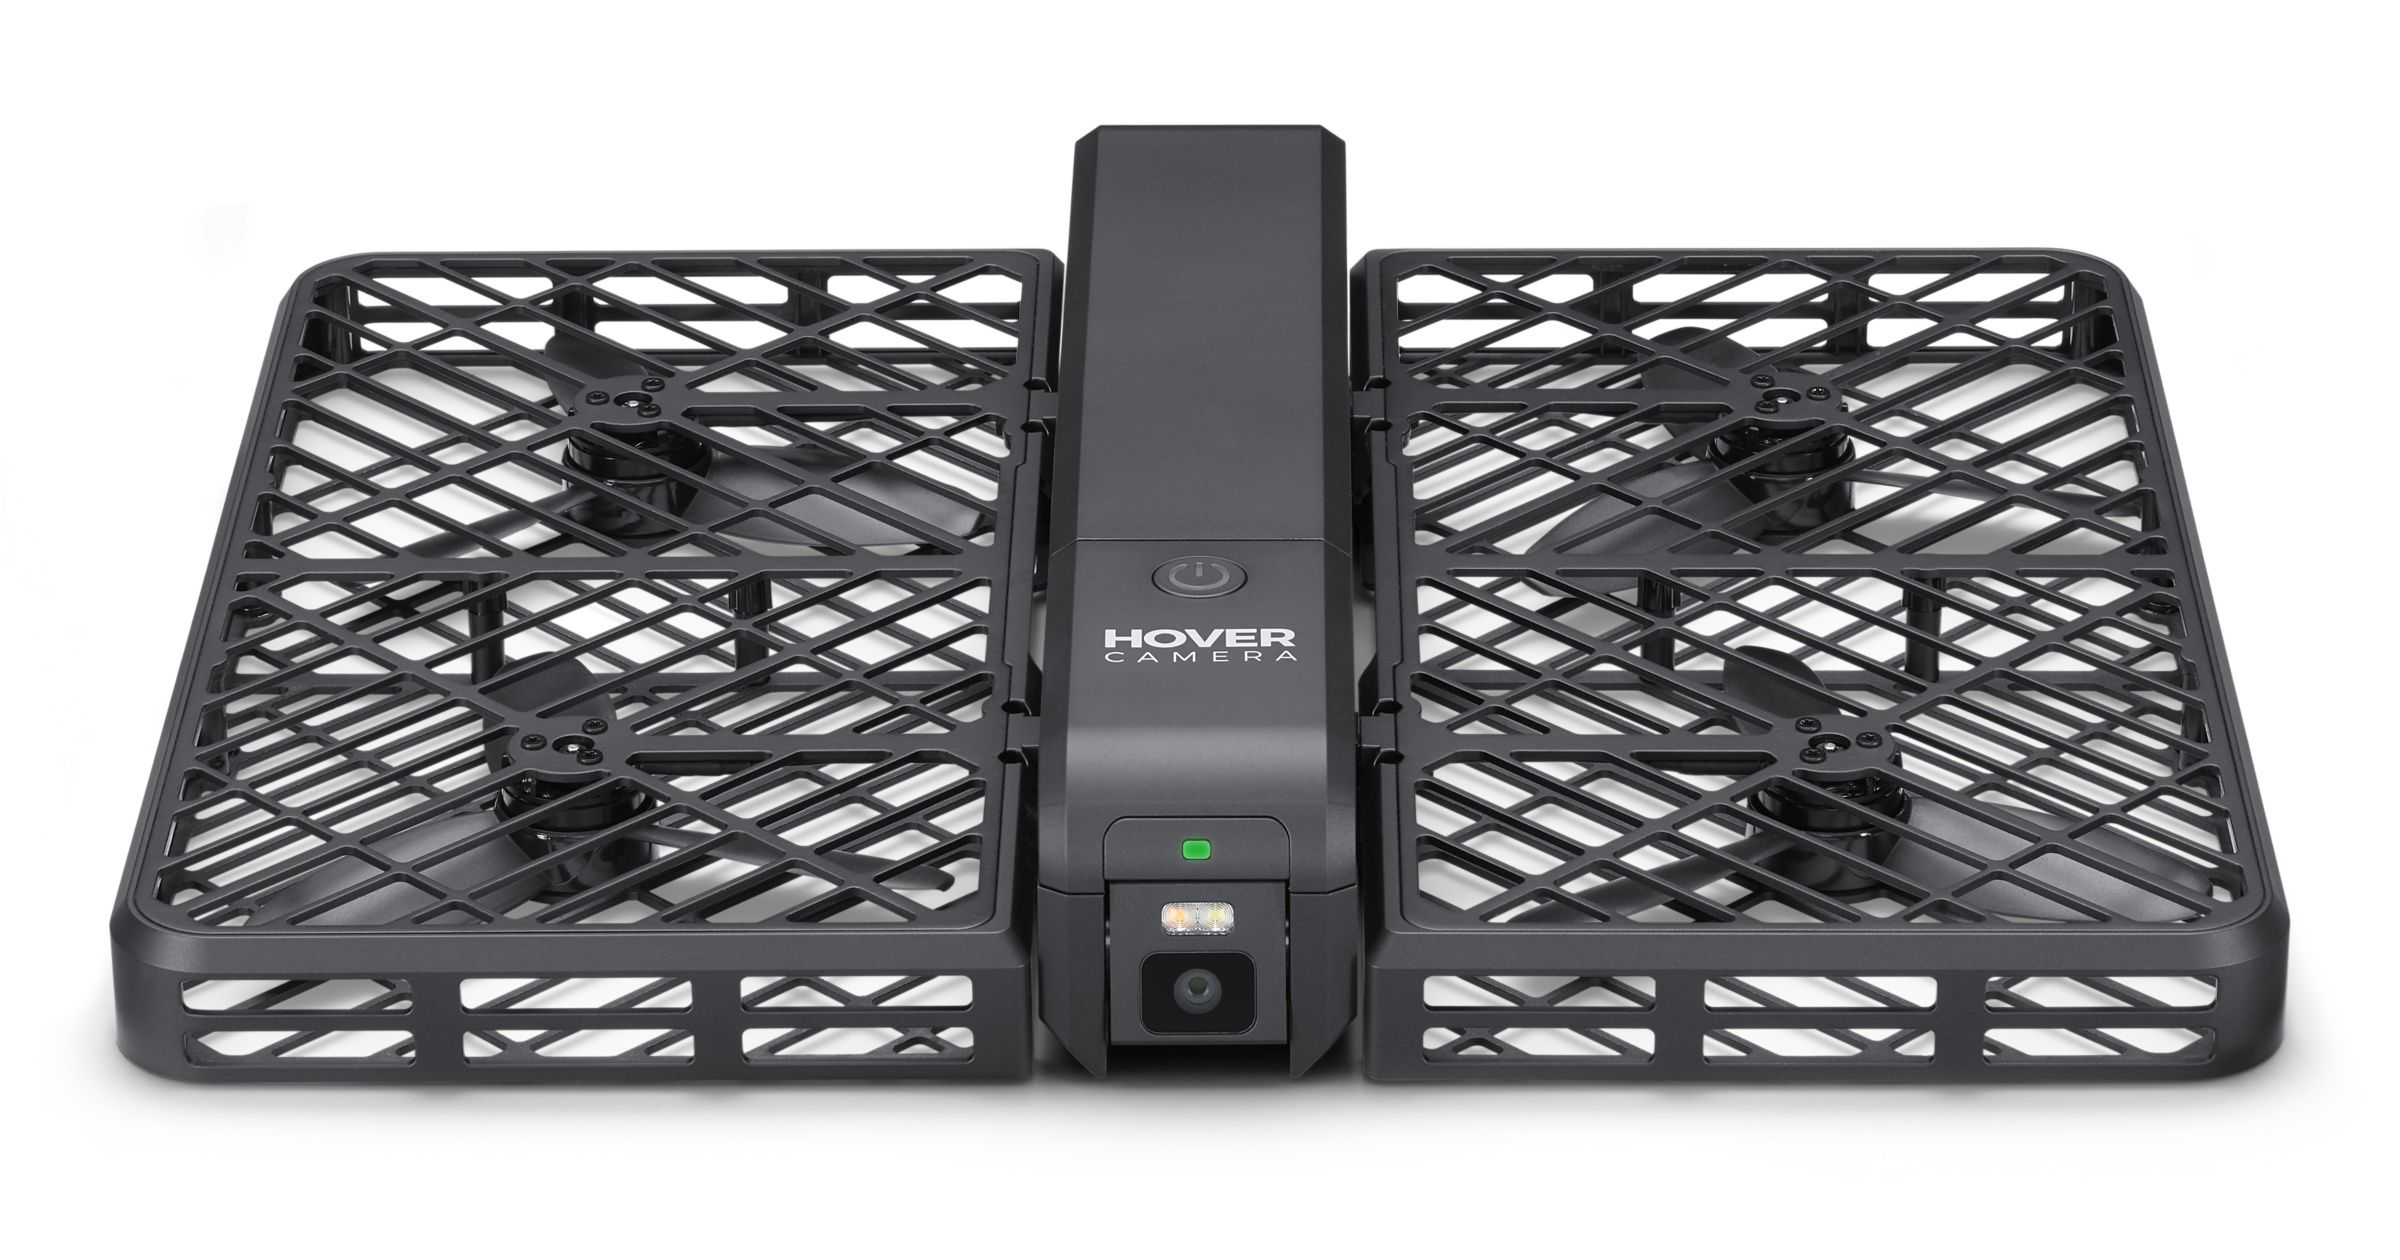 Capture Your Life S Breathtaking Moments With Hover Camera Passport The Camera Drone That Follows You Everywhere You Go Buy Now At Drone Drone Camera Camera